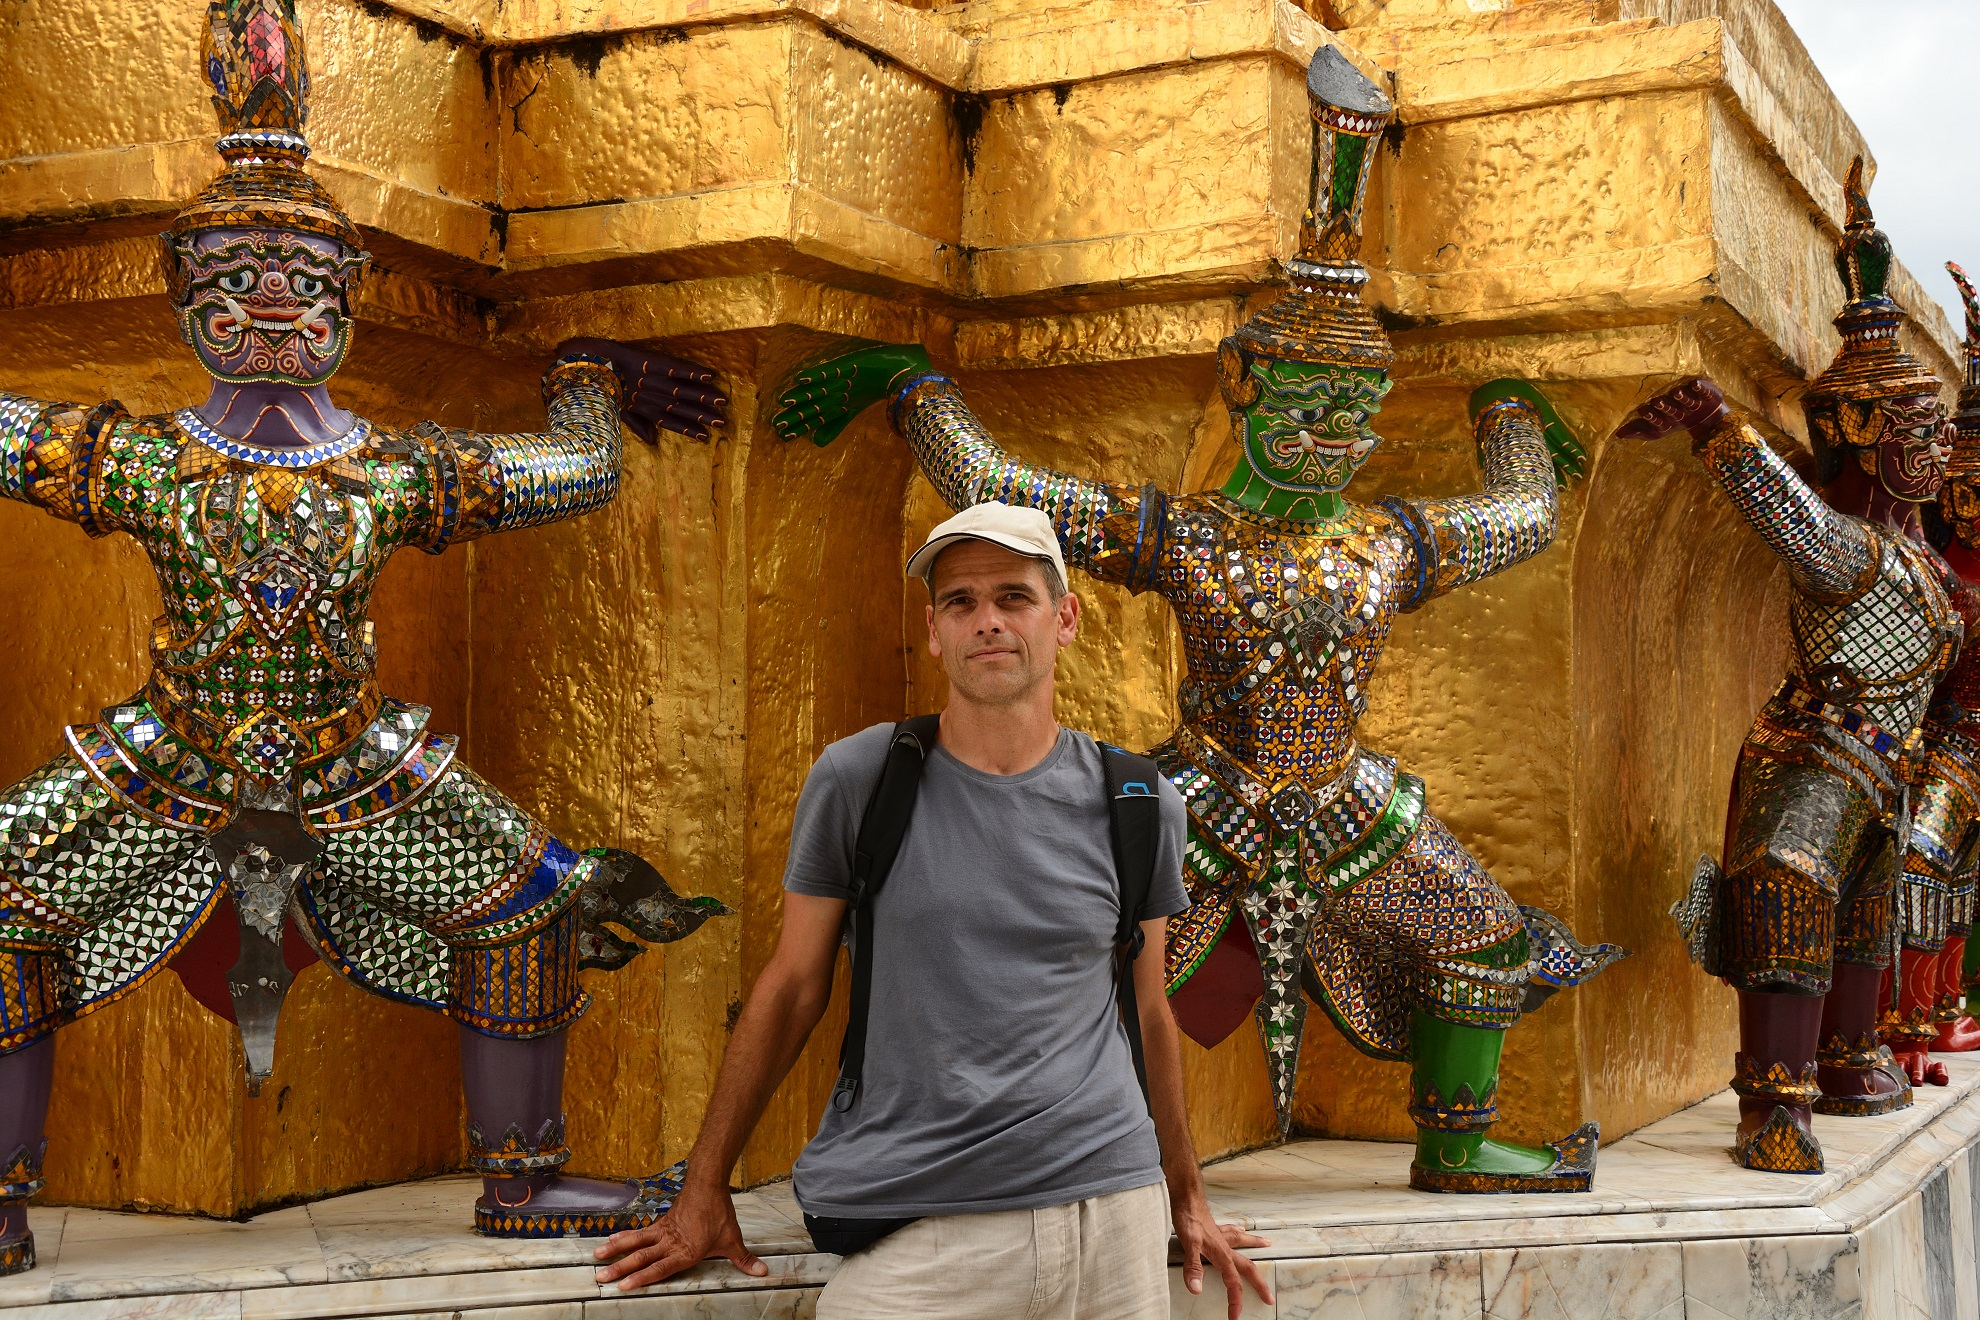 I thought I'd blend in well with the monkey statues :)